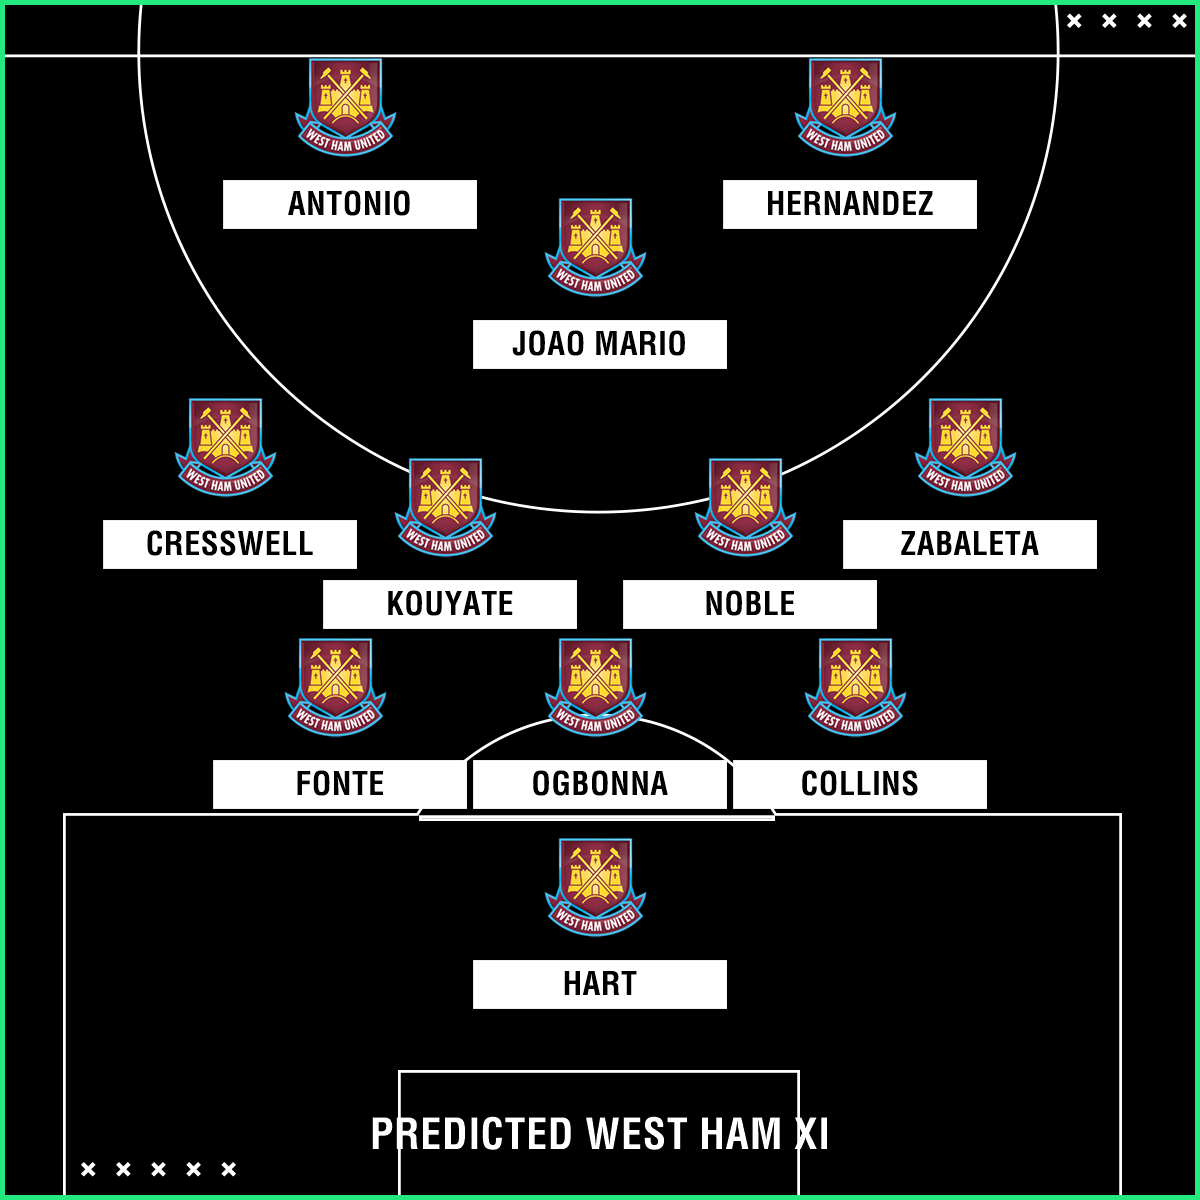 Predicted West Ham XI